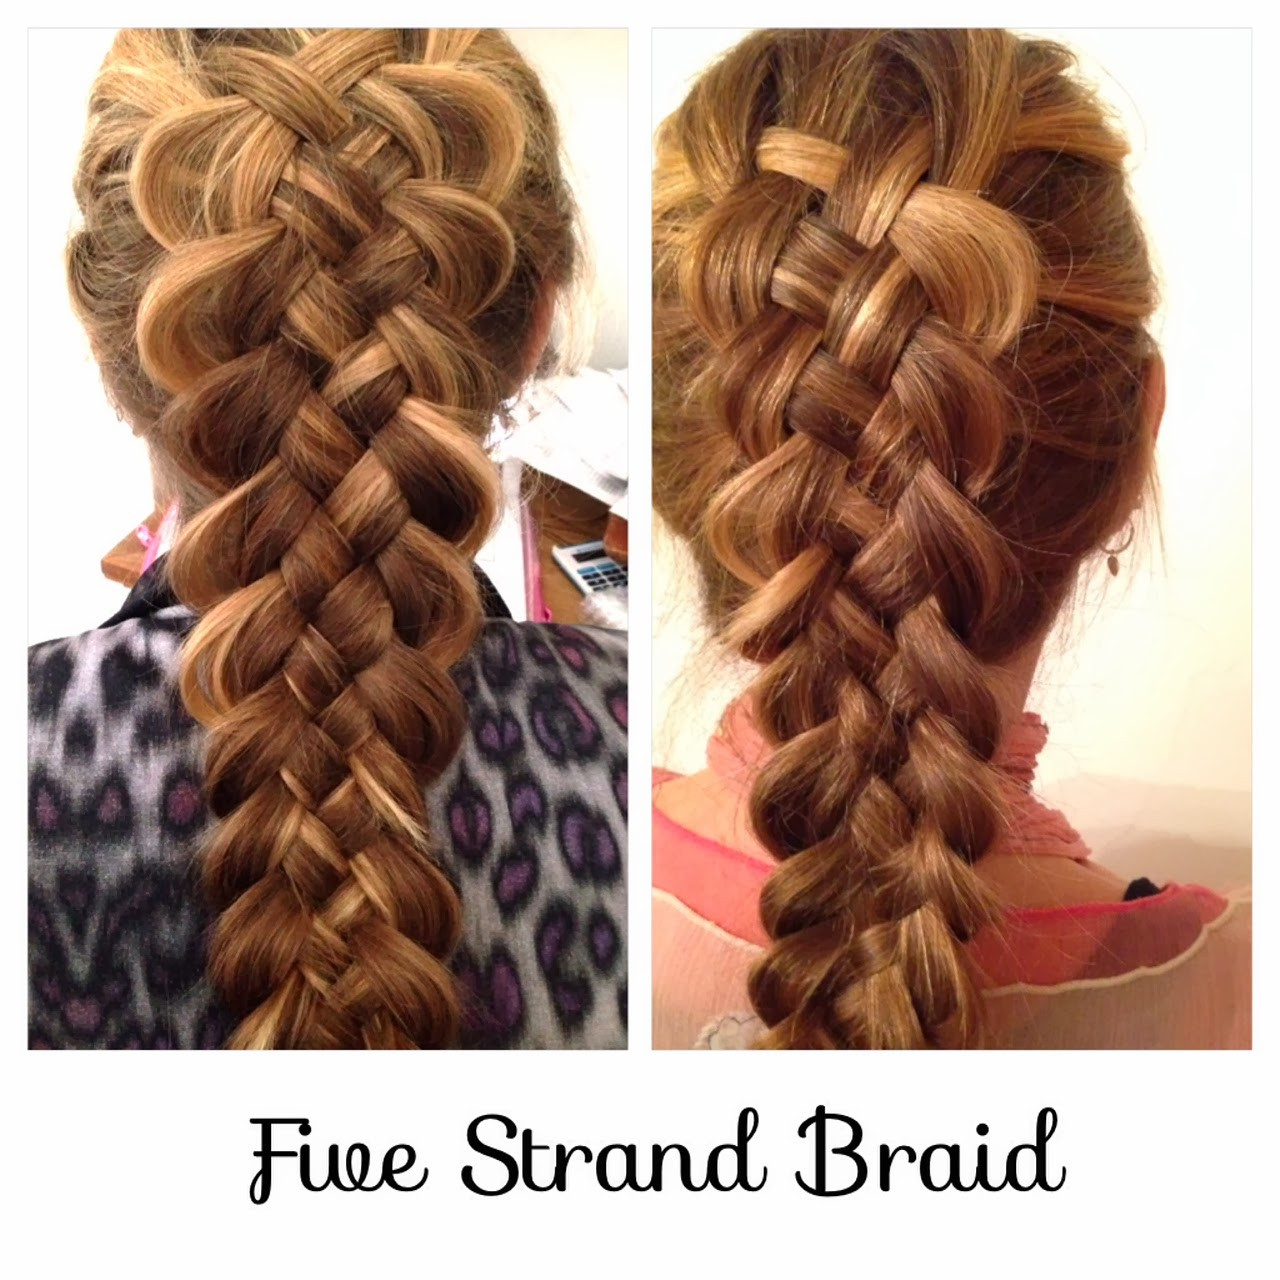 5 Braids Hairstyles  Hair Styles by Liberty October 2013